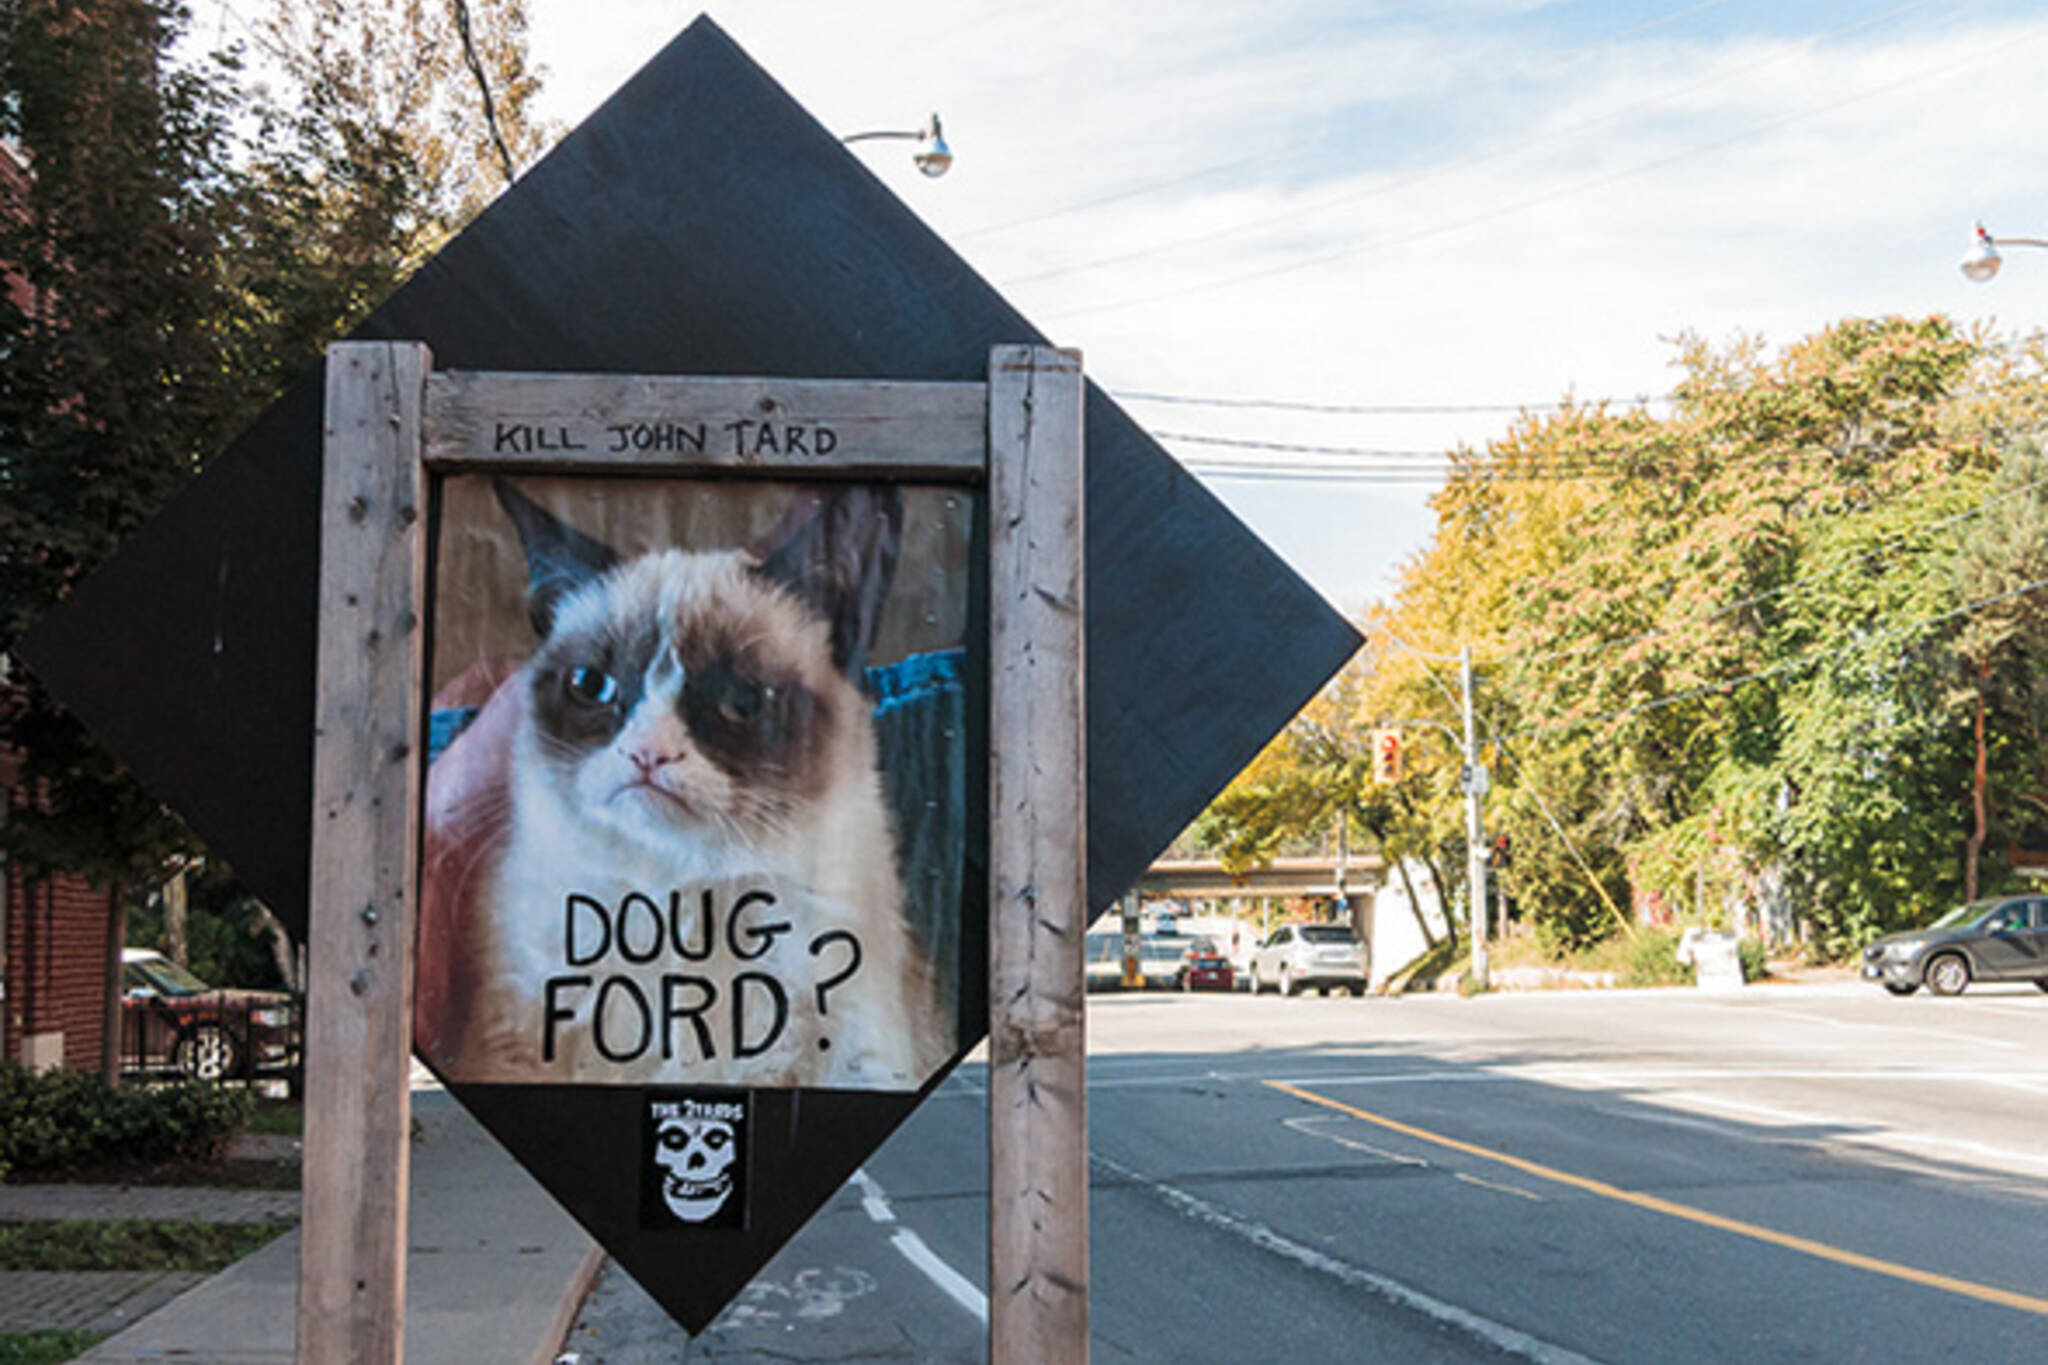 Doug Ford sign